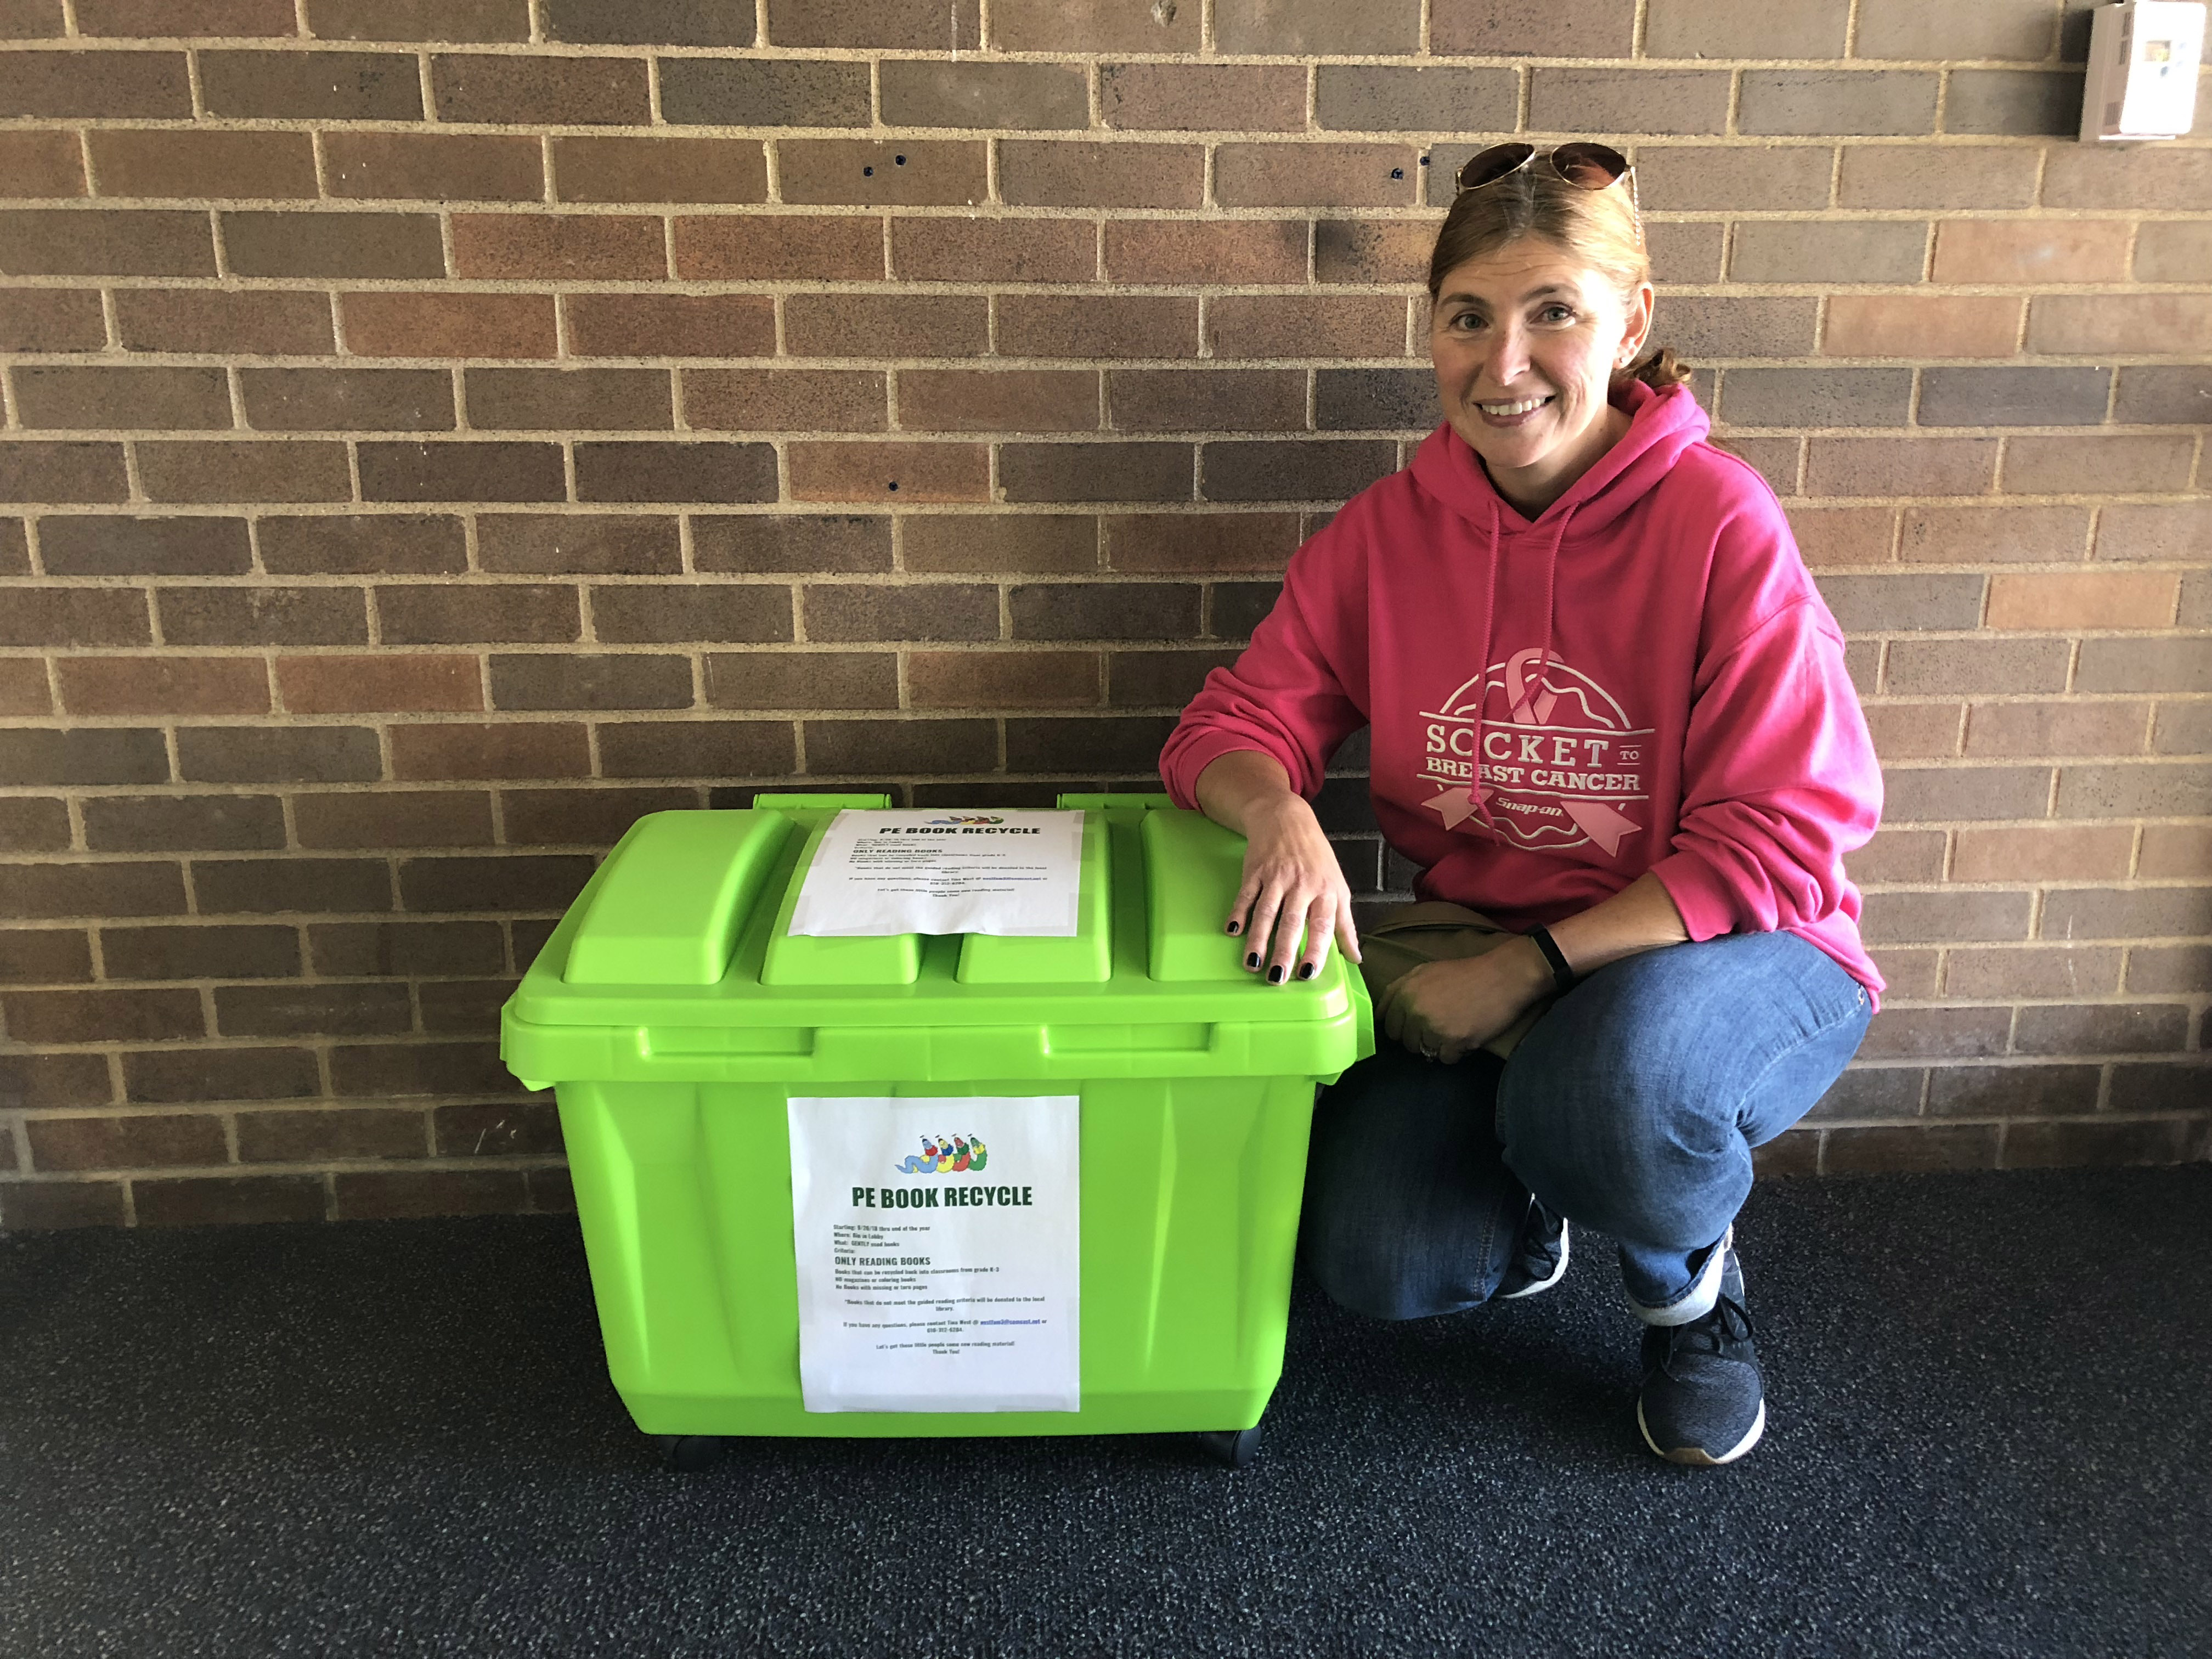 Making A Difference Pe Book Recycle Program News Item Cms Colonial School District